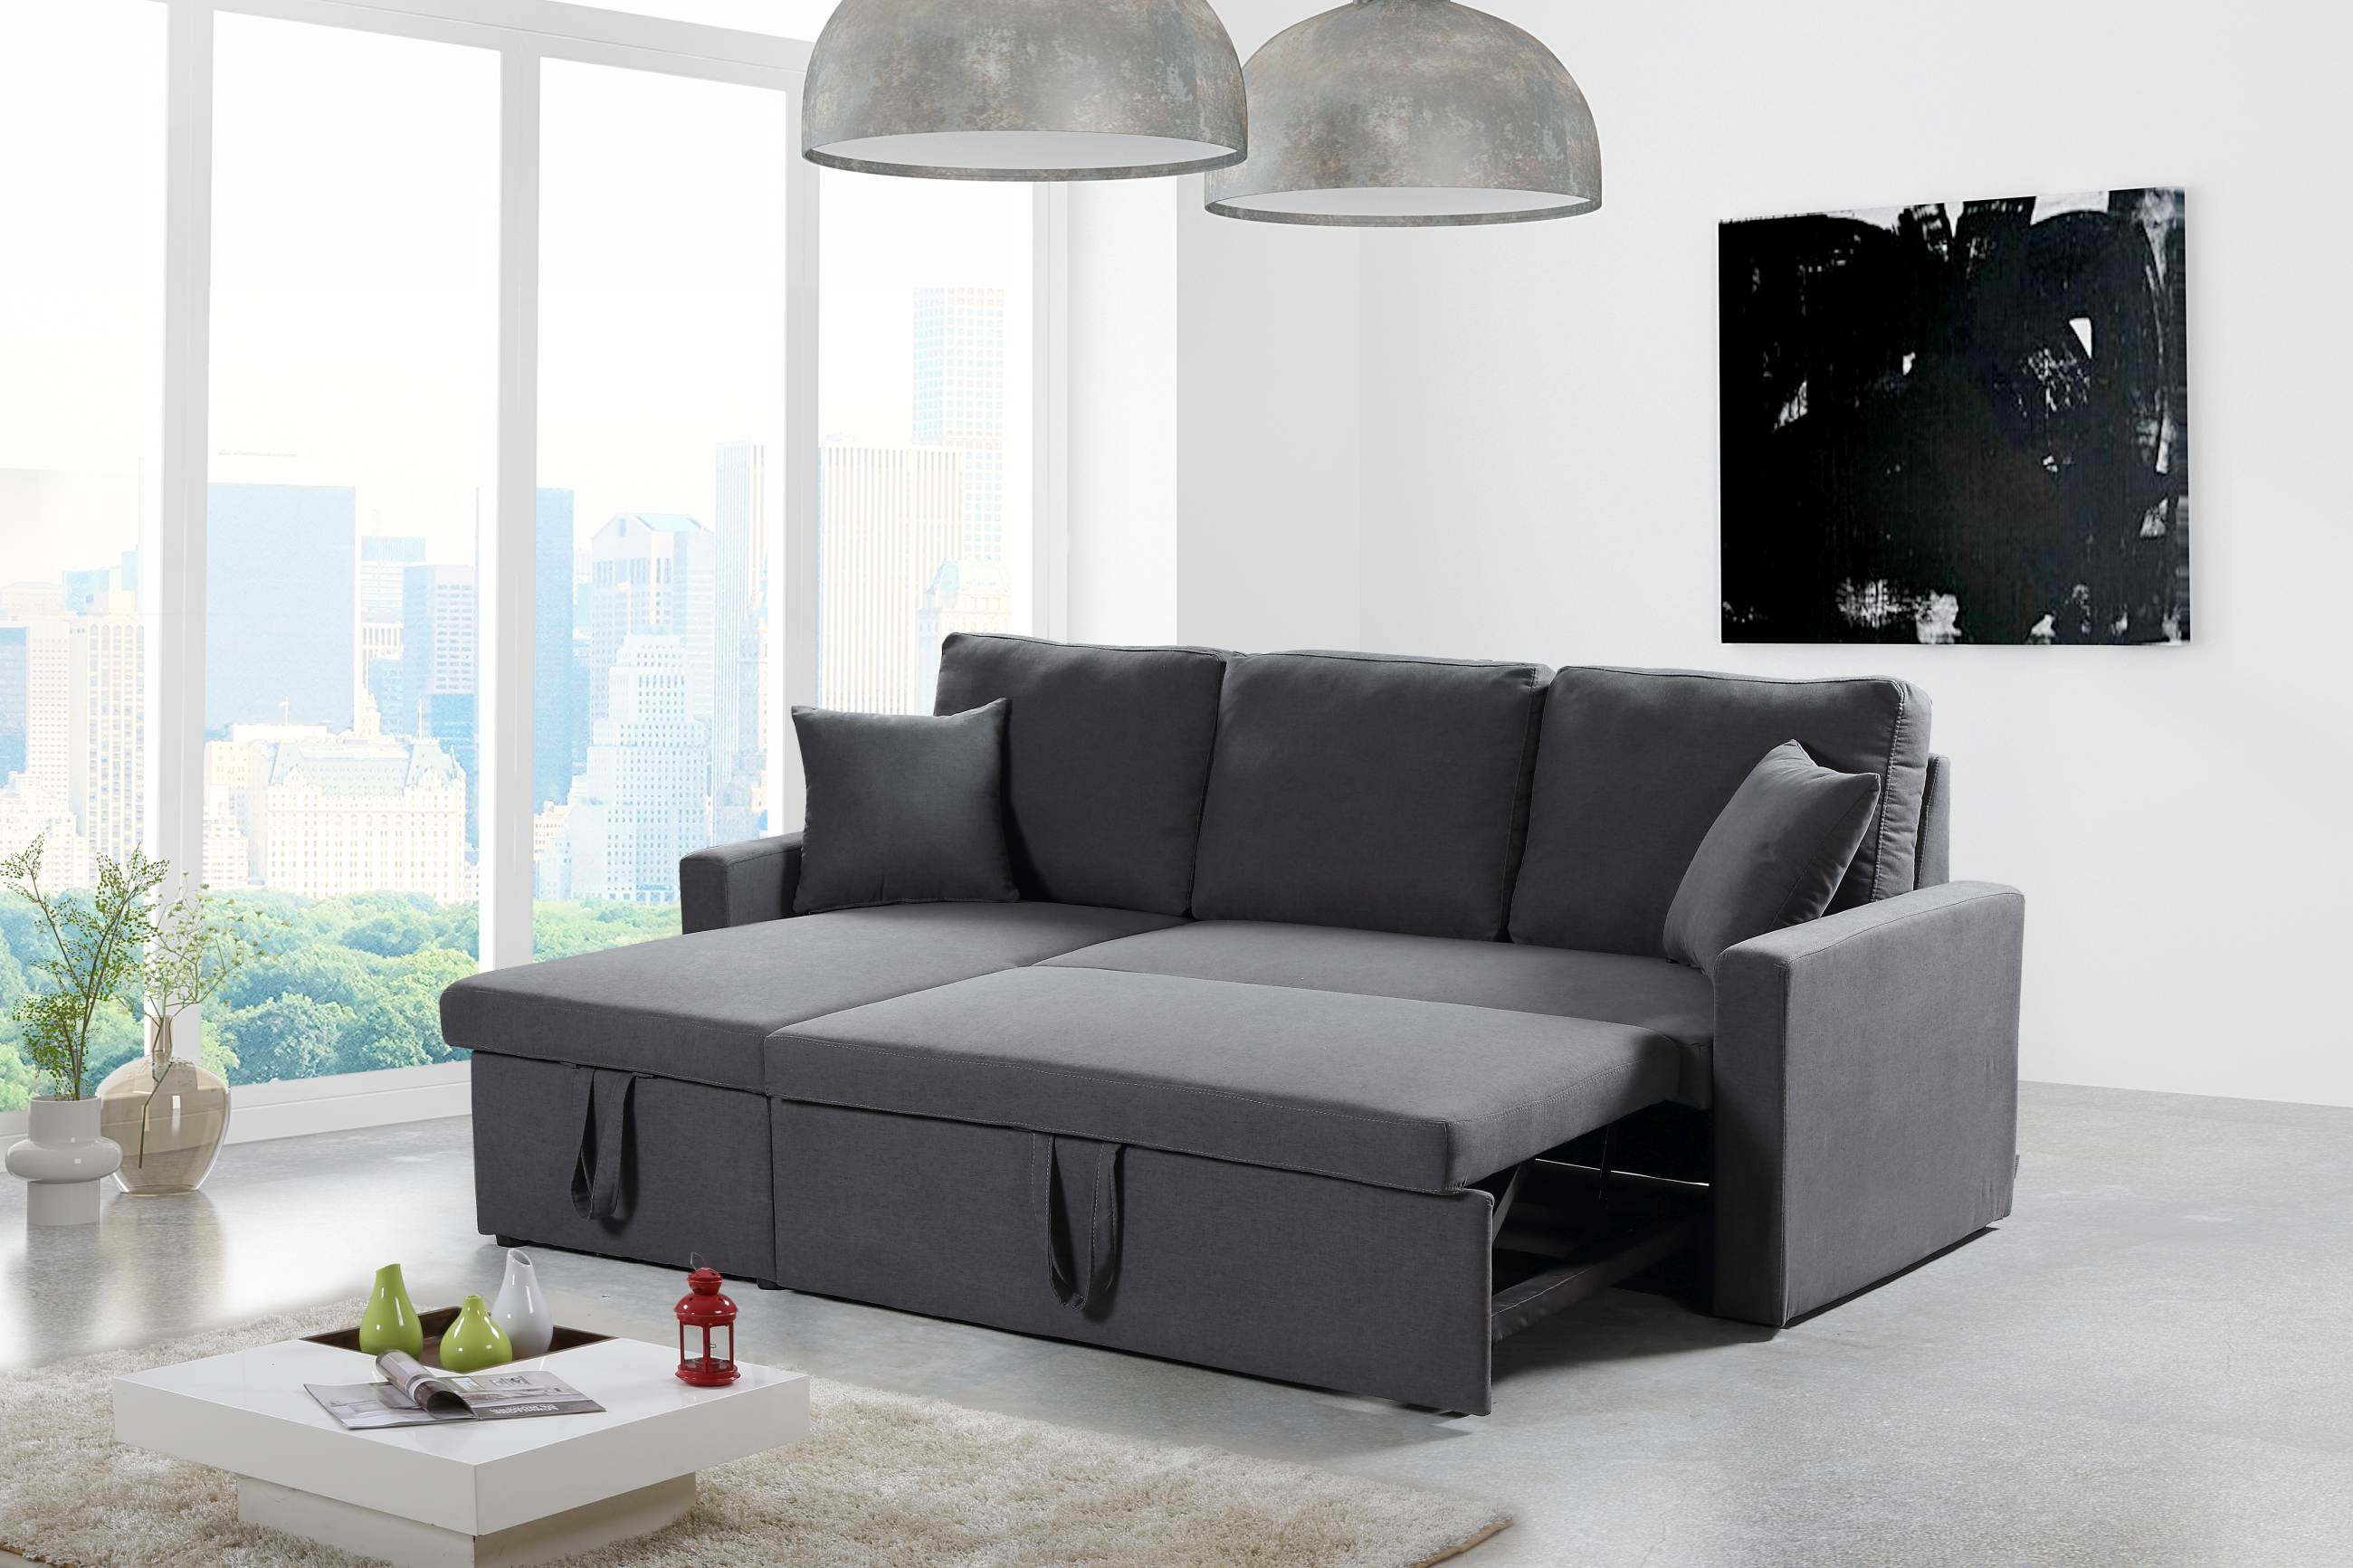 Husky® Reversible Sectional Sofa Bed - FREE Shipping in Canada